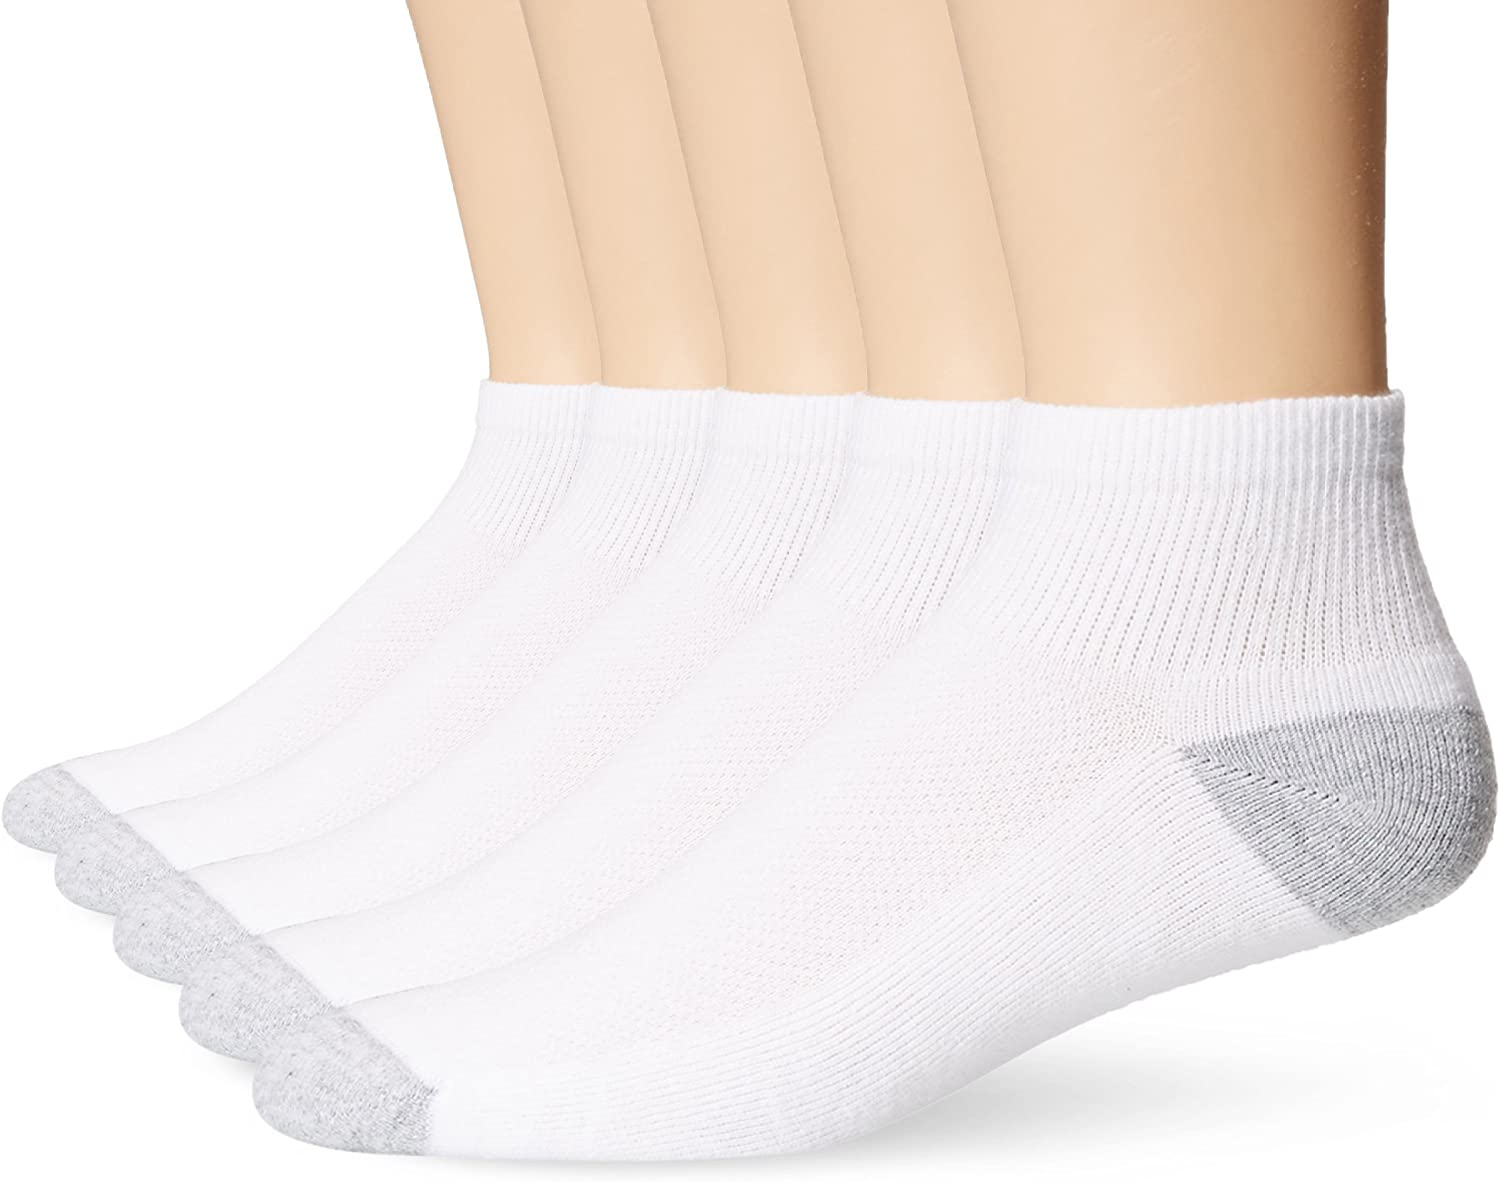 Hanes Ultimate Men's 5-Pack FreshIQ X-Temp Ankle Socks